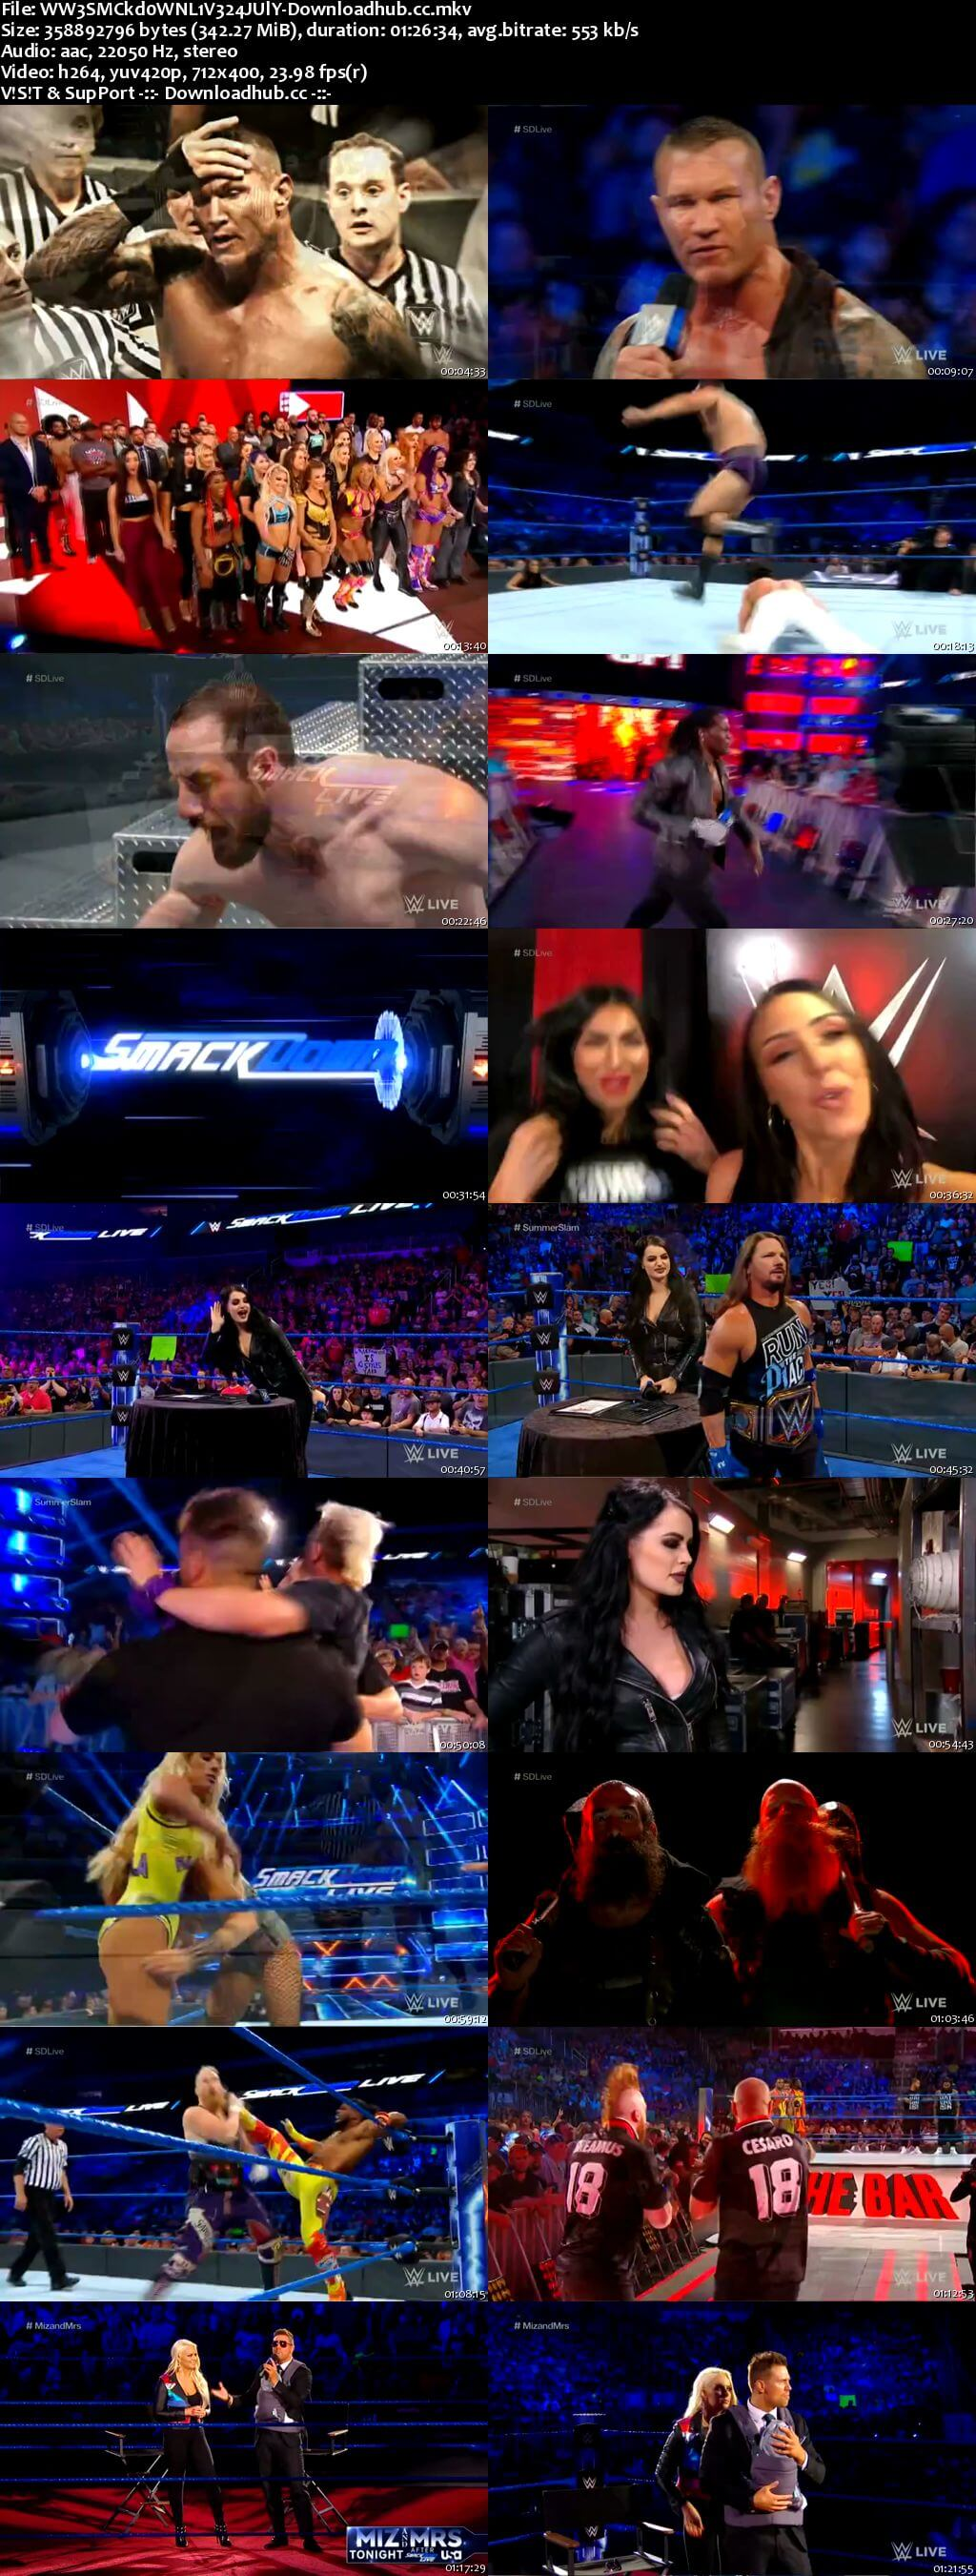 WWE Smackdown Live 24 July 2018 480p HDTV Download